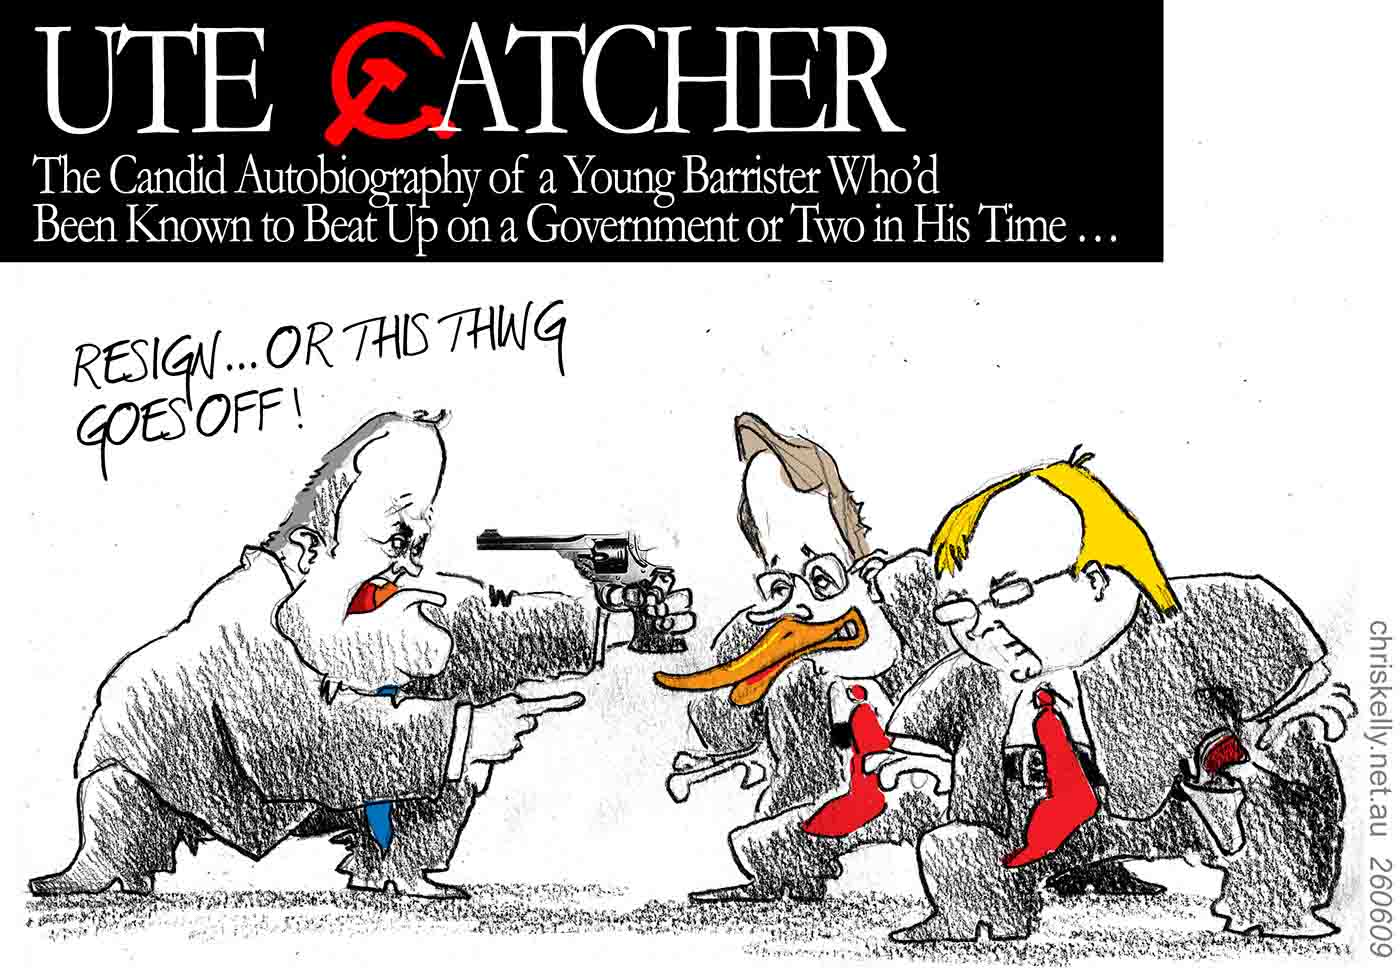 In the top left-hand corner of the cartoon is the title: 'Ute Catcher: The Candid Autobiography of a Young Barrister Who'd Been Known to Beat Up on a Government or Two in His Time ...' The 'C' in Catcher is a bright red Soviet hammer and sickle. There are three figures in the cartoon, all dressed in grey suits drawn in pencil, and squared off ready for a gun battle. Kevin Rudd, bright yellow hair and a red tie, has his hand at his holster ready to draw. Wayne Swan, beside him, sporting a giant orange duck bill and red tie, also appears ready to draw. They face Malcolm Turnbull, in blue tie. Mr Turnbull, pointing his finger at Mr Rudd and Mr Swan and his gun at his own head, says: 'Resign ... or this thing goes off!' - click to view larger image